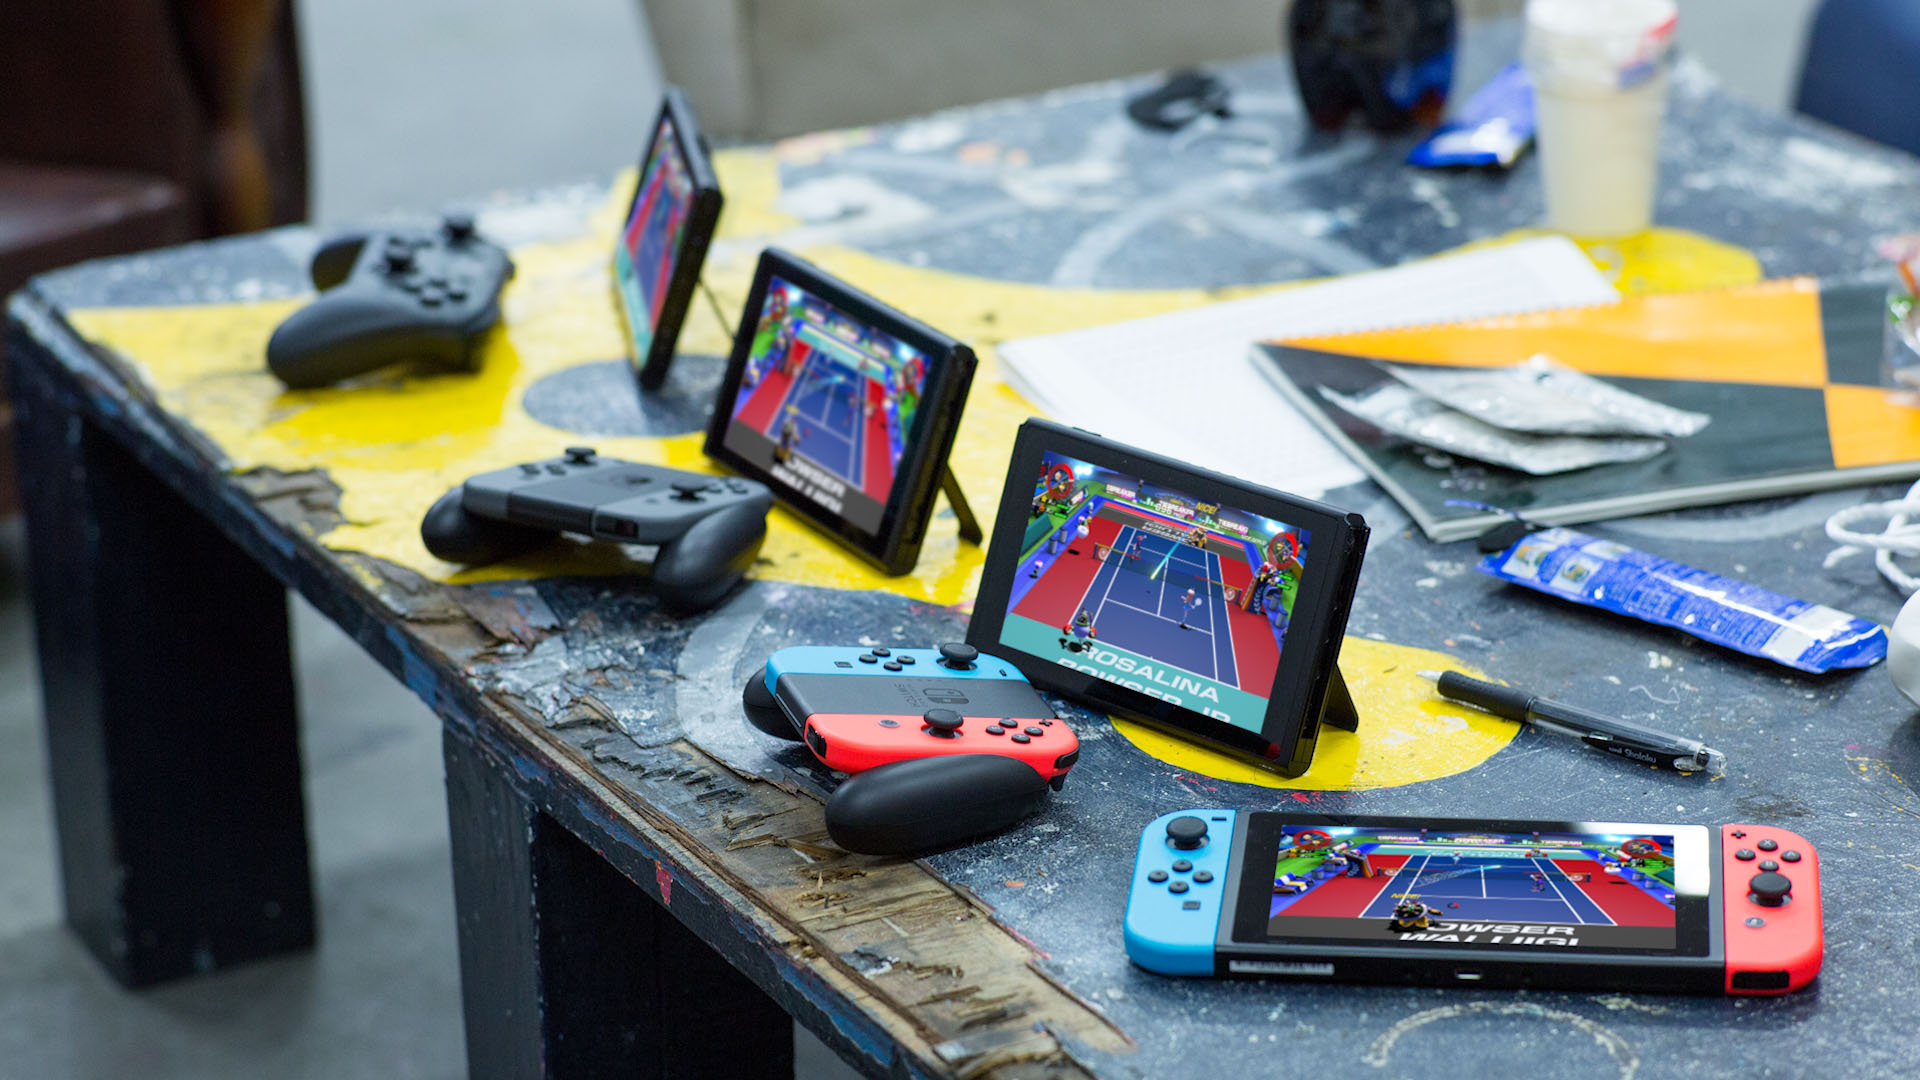 Nintendo is selling way more Switches than it predicted | Engadget